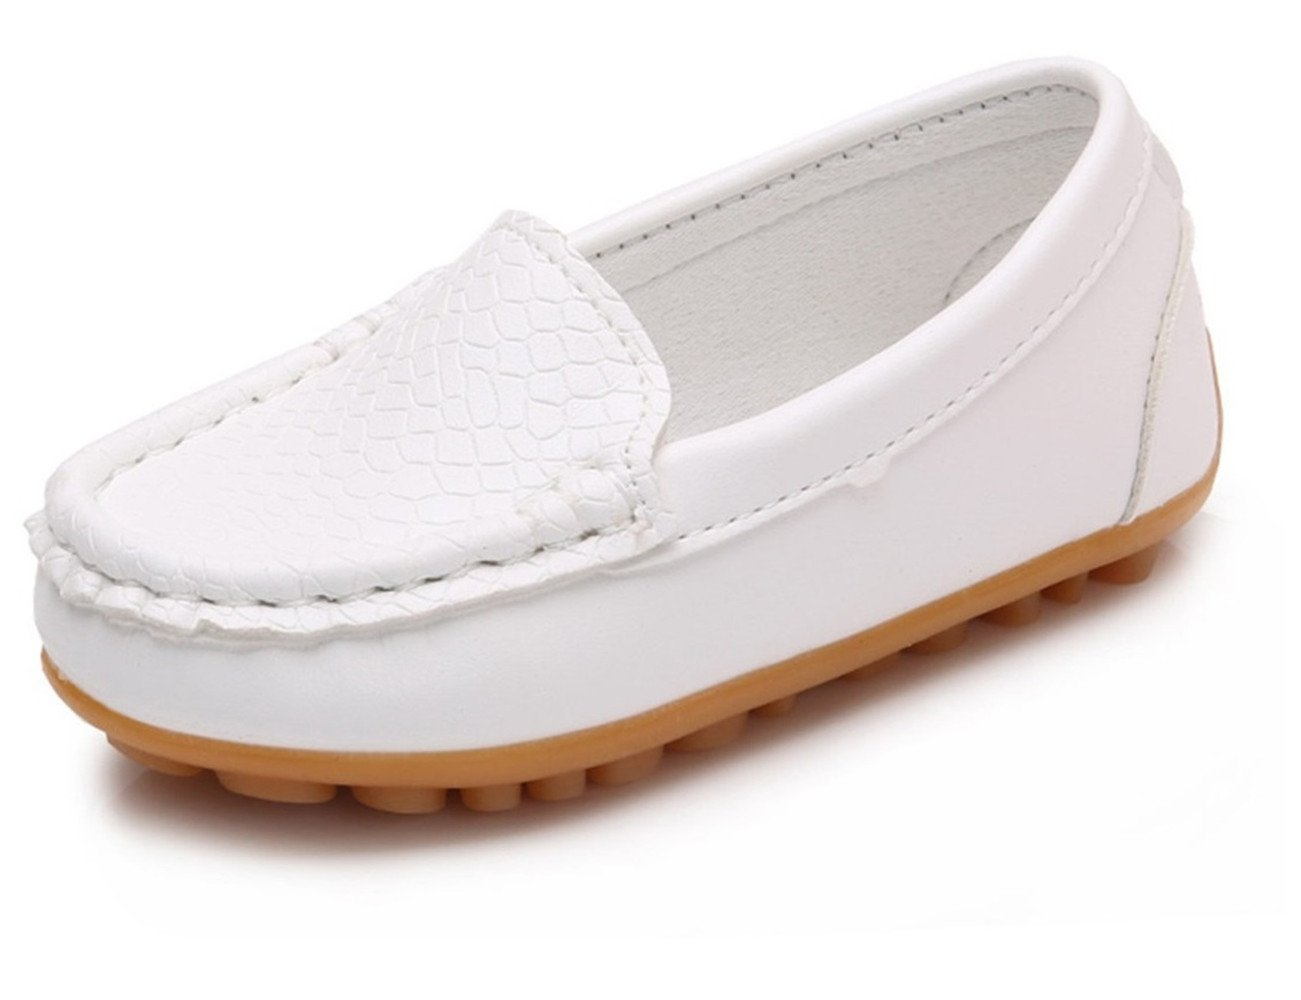 Toddler Boys Girls Leather Loafers Slip On Boat Dress Shoes Flat (10 M US Toddler, White)